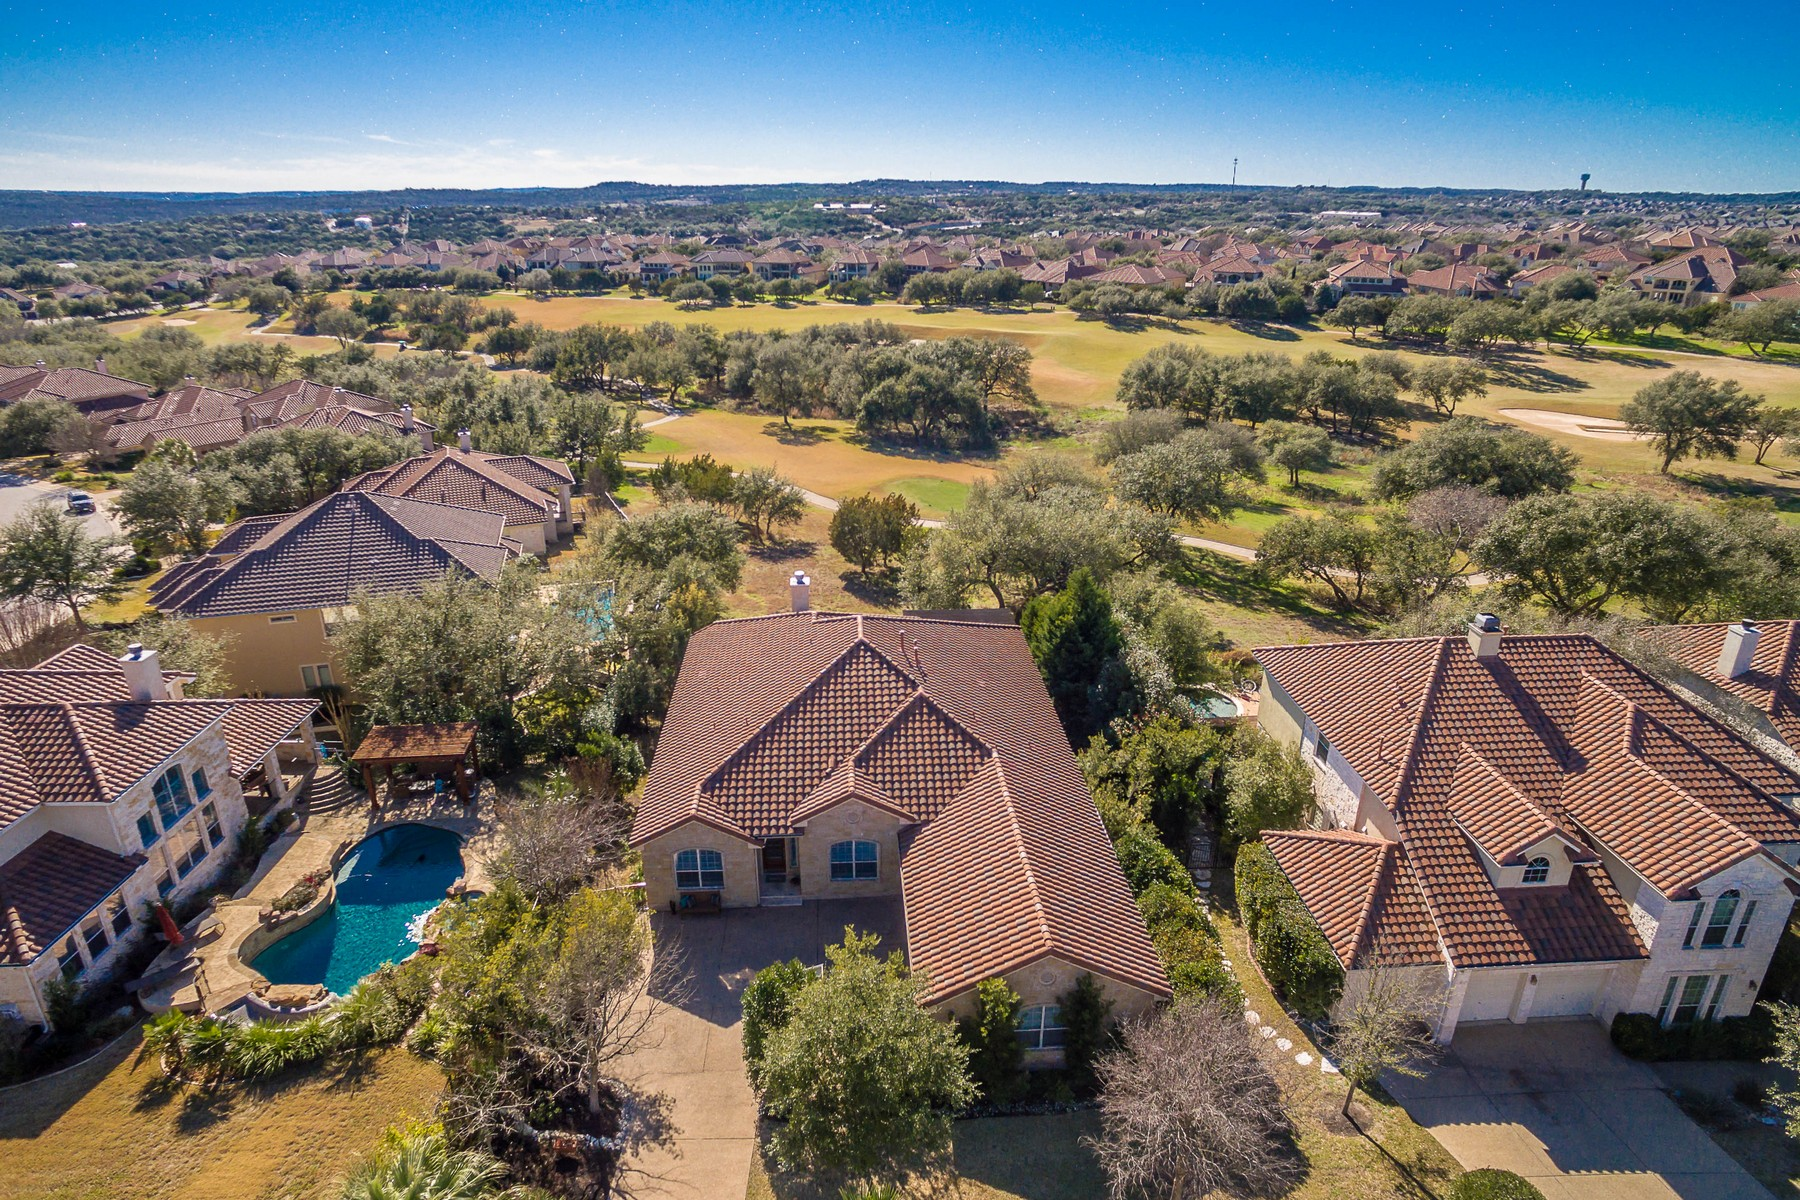 Single Family Home for Sale at Lake Travis Elegance 15912 Spillman Ranch Loop Austin, Texas 78738 United States